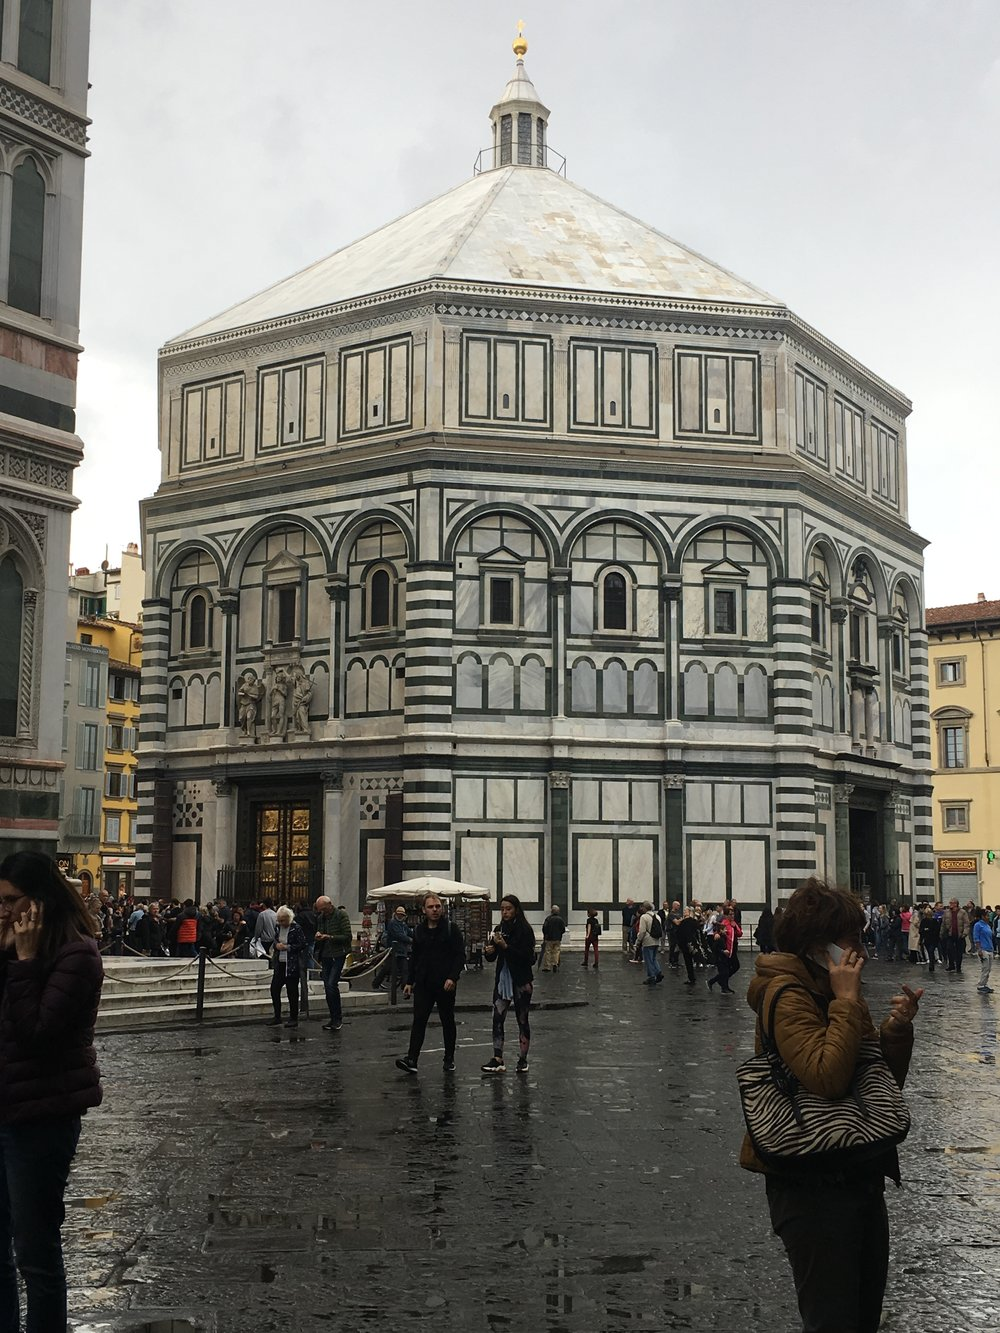 The baptistry under gray skies and rain